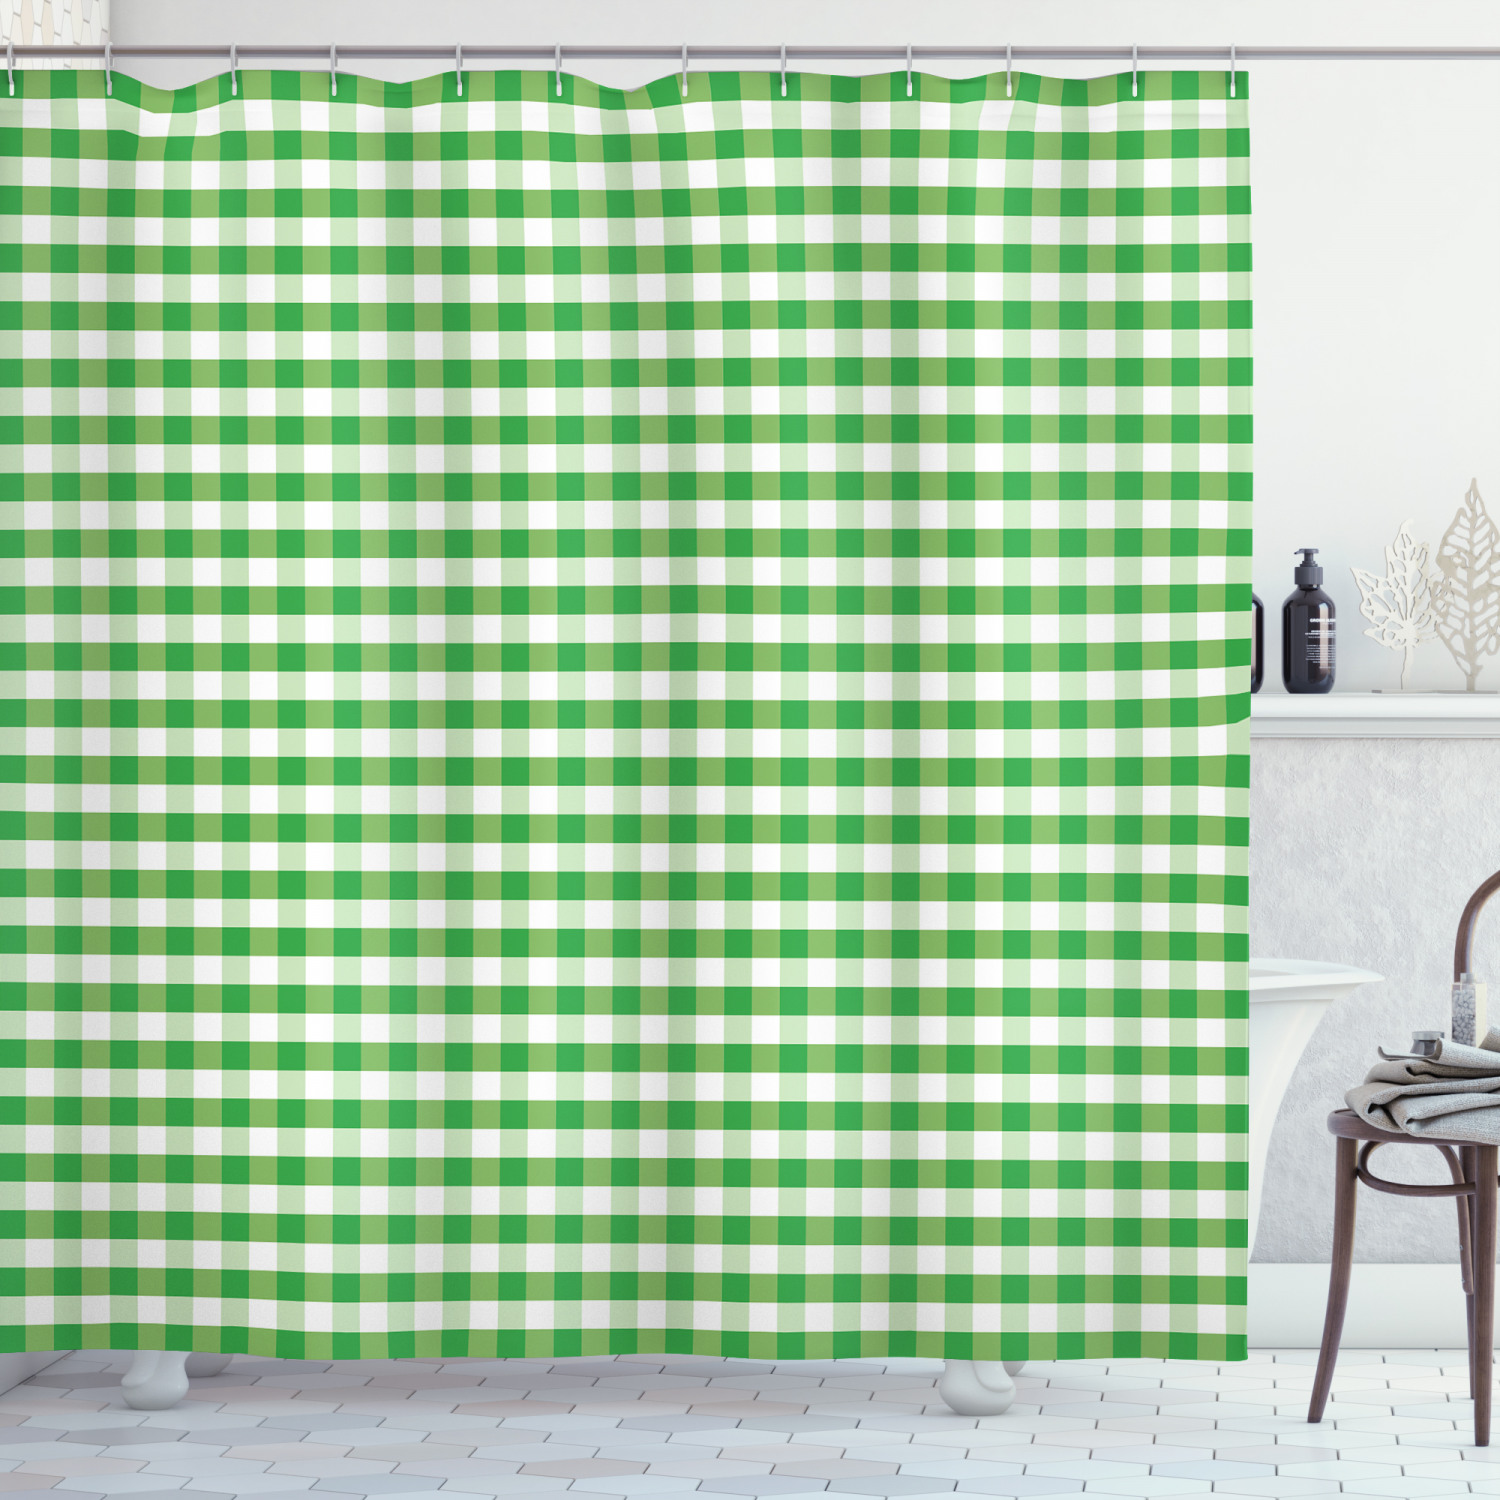 gingham shower curtain picnic blanket inspired green and white plaid retro gingham checkered pattern fabric bathroom set with hooks 69w x 70l